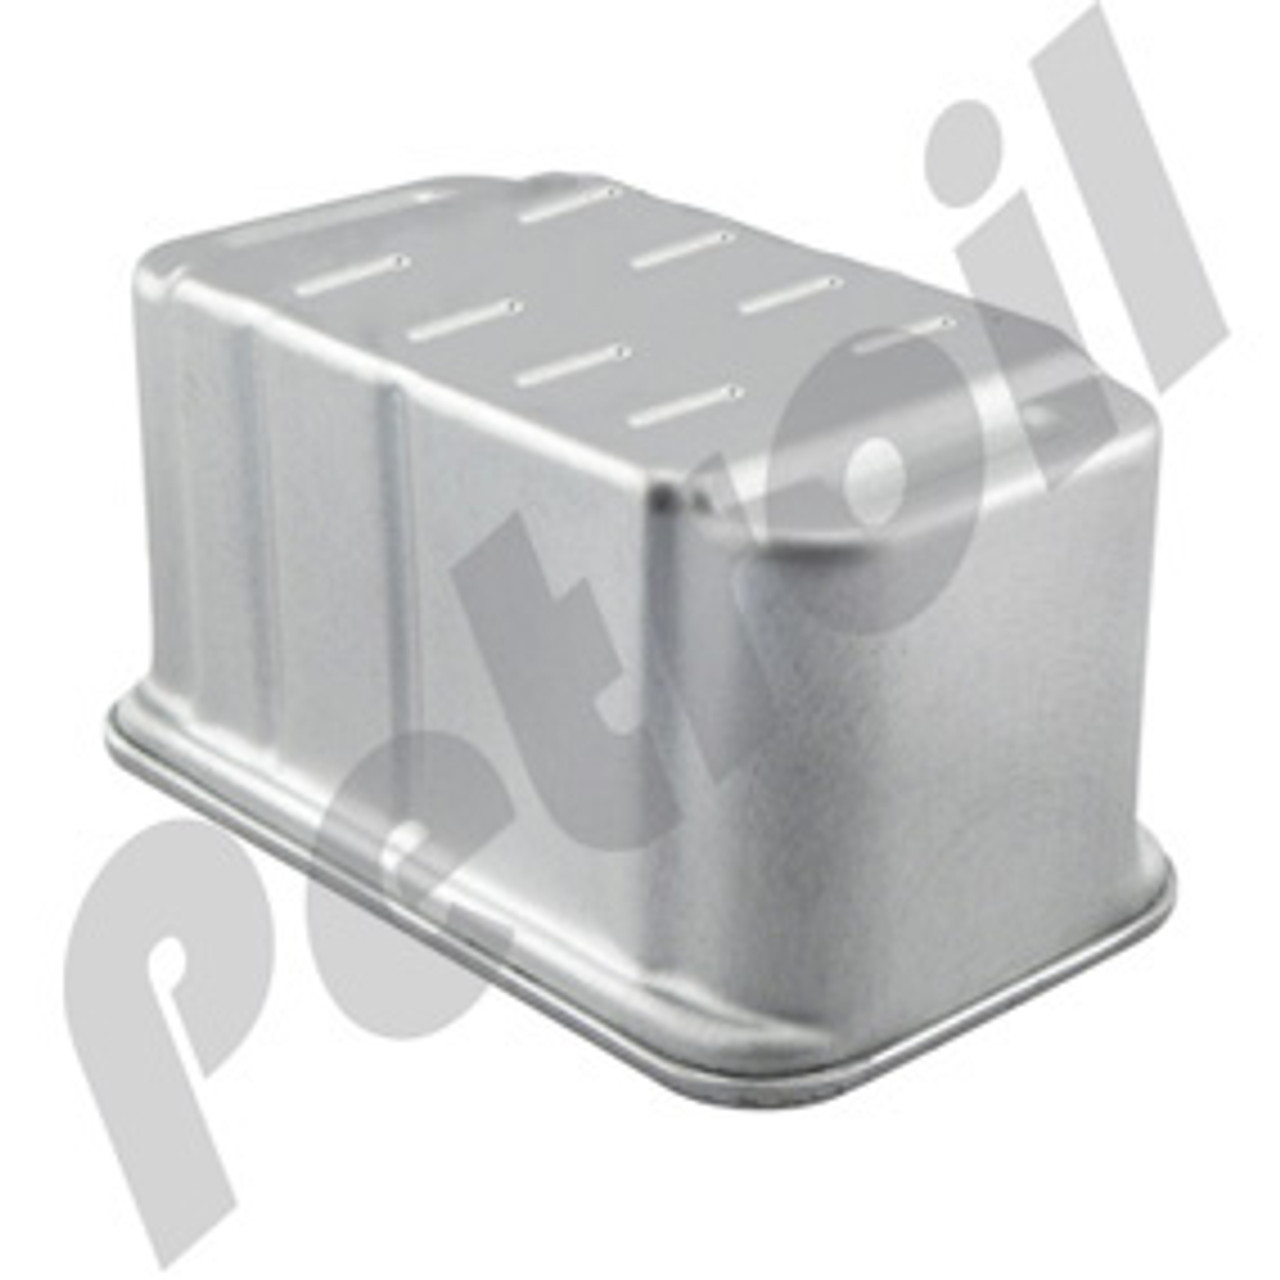 king fuel filter p556286 donaldson fuel filter water separator box type thermo thermo king fuel filter donaldson fuel filter water separator